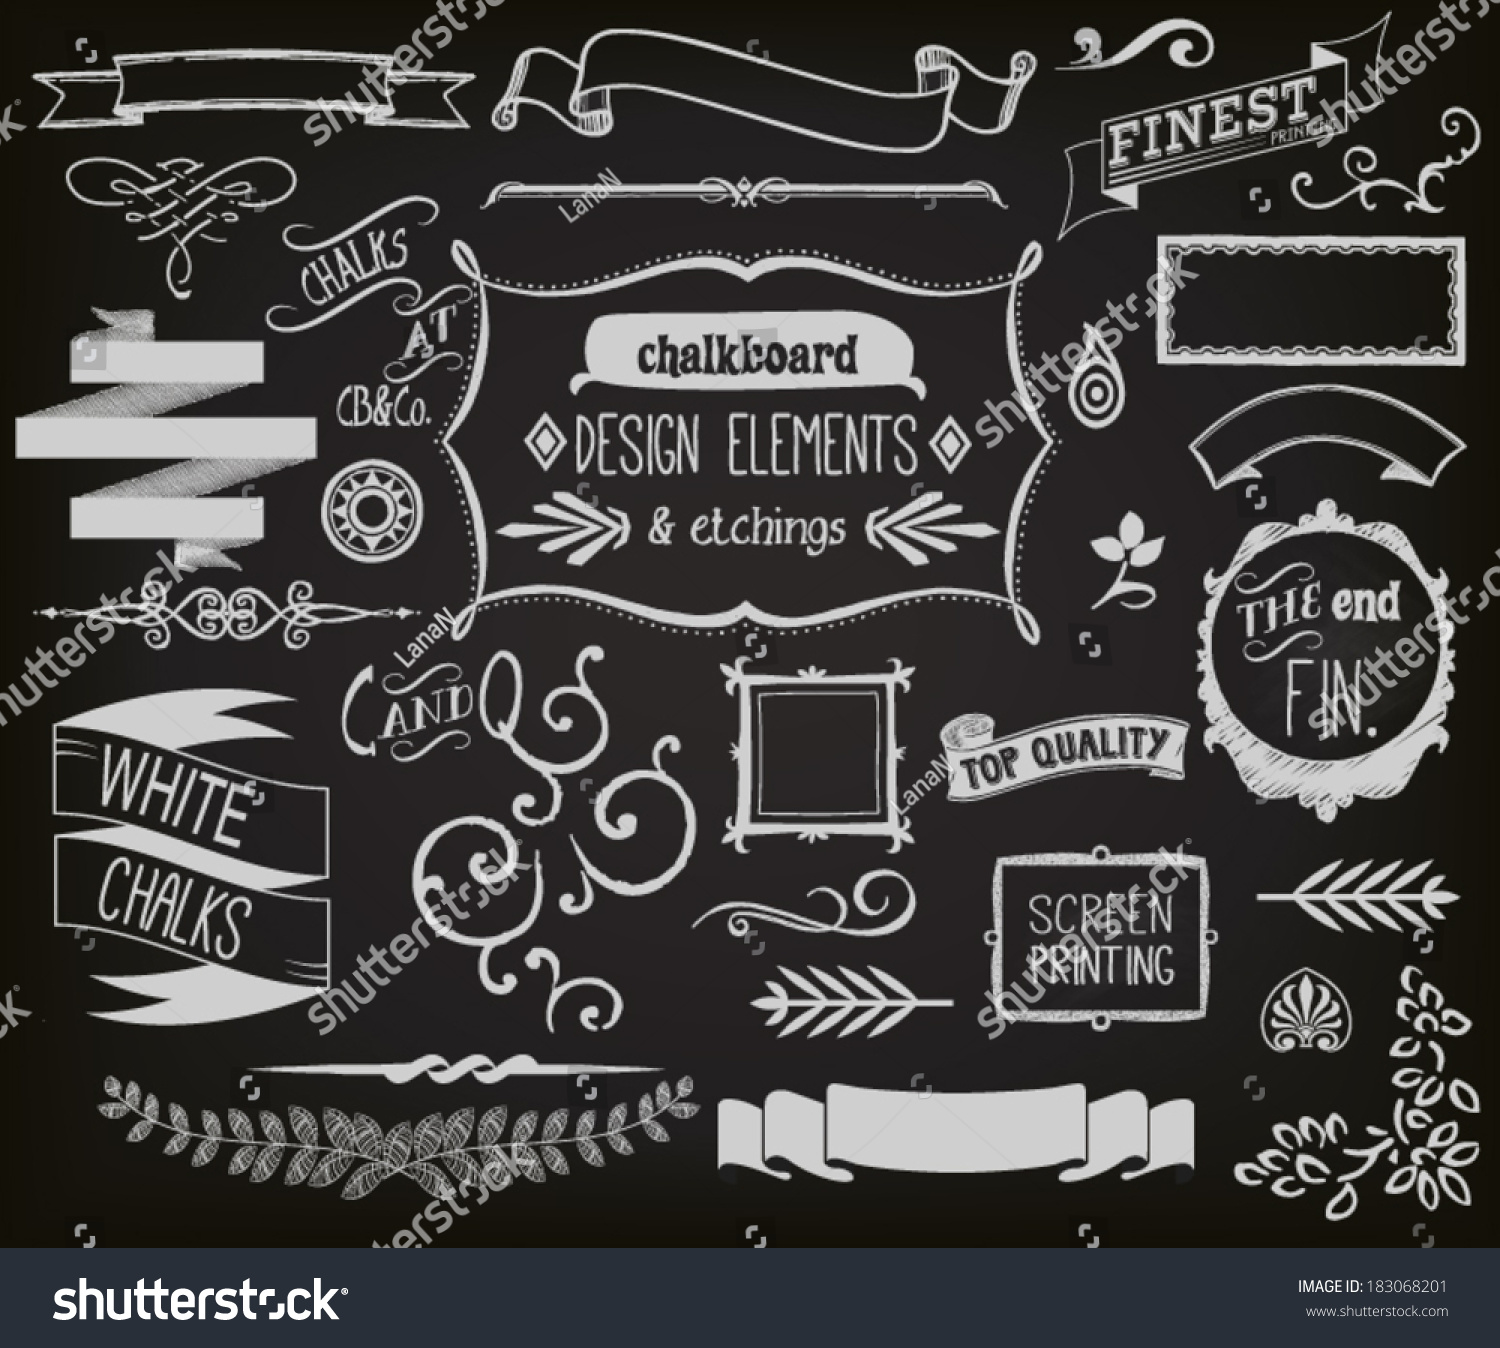 Art Designs Chalkboard Design Elements And Etchings Blackboard Clip